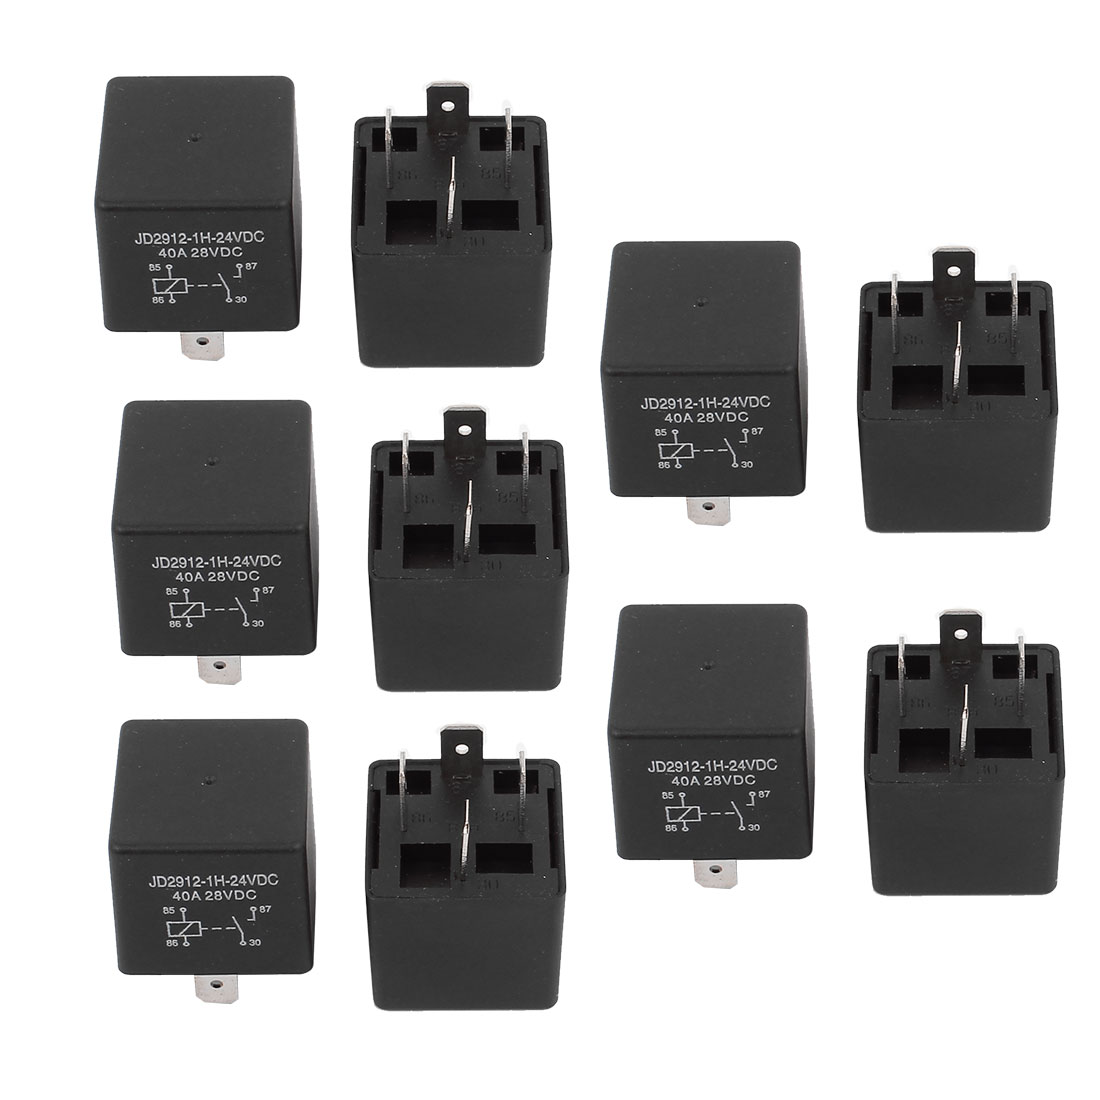 JD2912 DC 24V Coil 40A 4 Pins SPST Vehicle Car Security Power Relay 10pcs